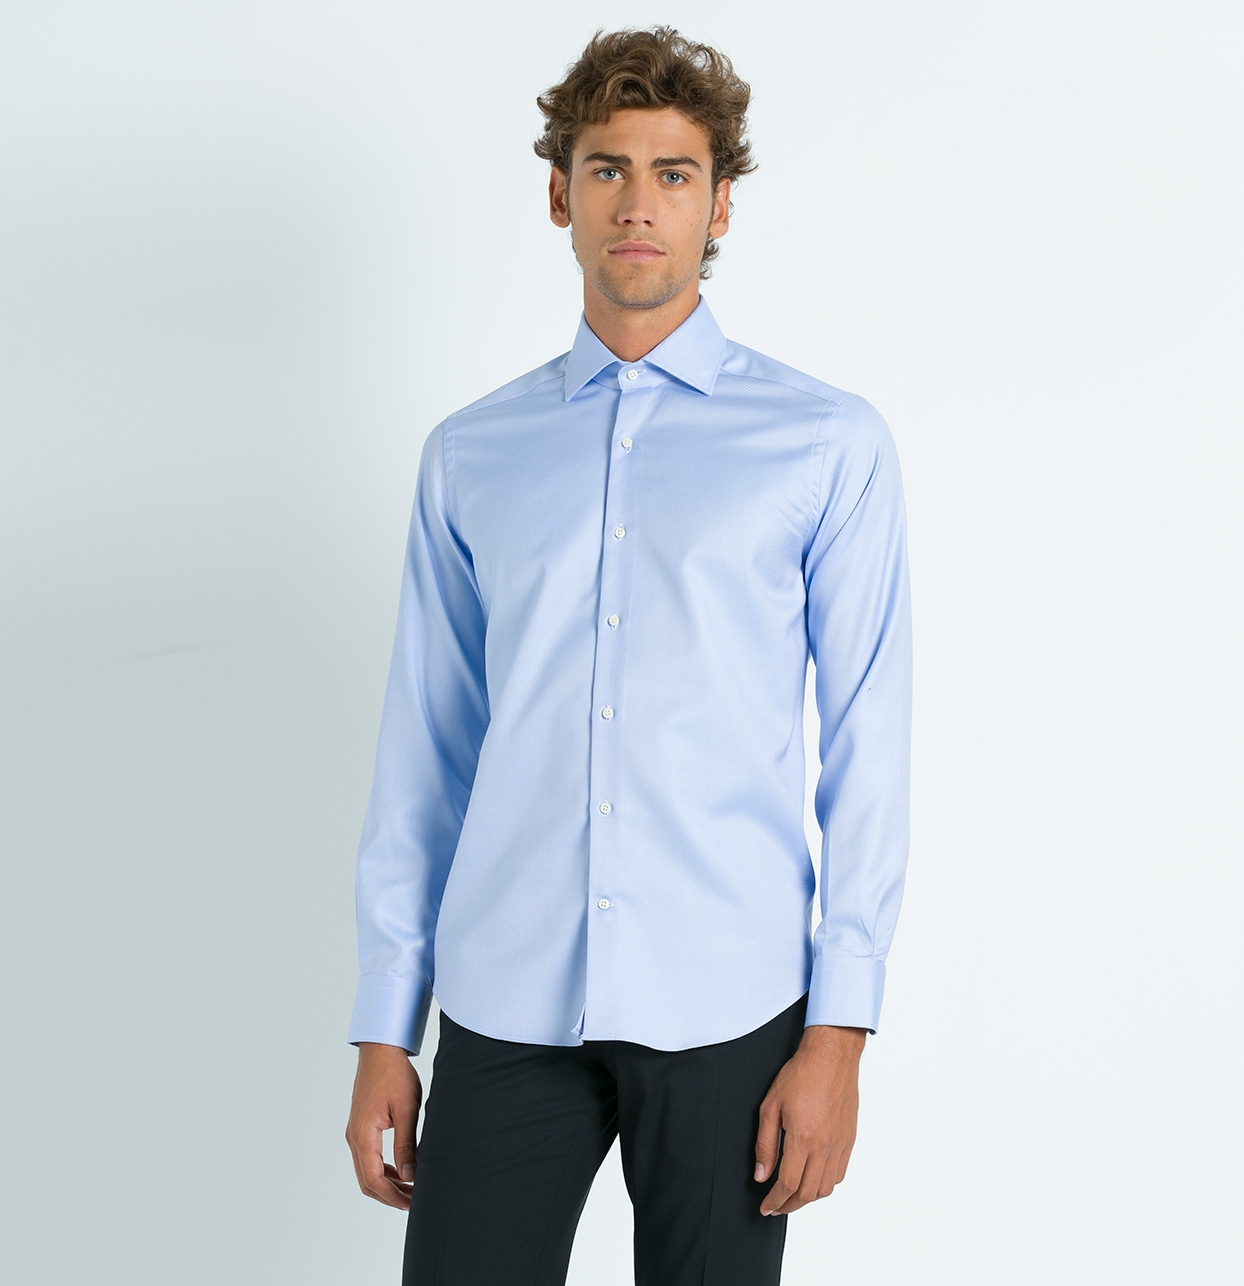 Camisa Formal Wear REGULAR FIT cuello Italiano modelo NAPOLI tejido pin point color blanco, 100% Algodón. - Ítem3